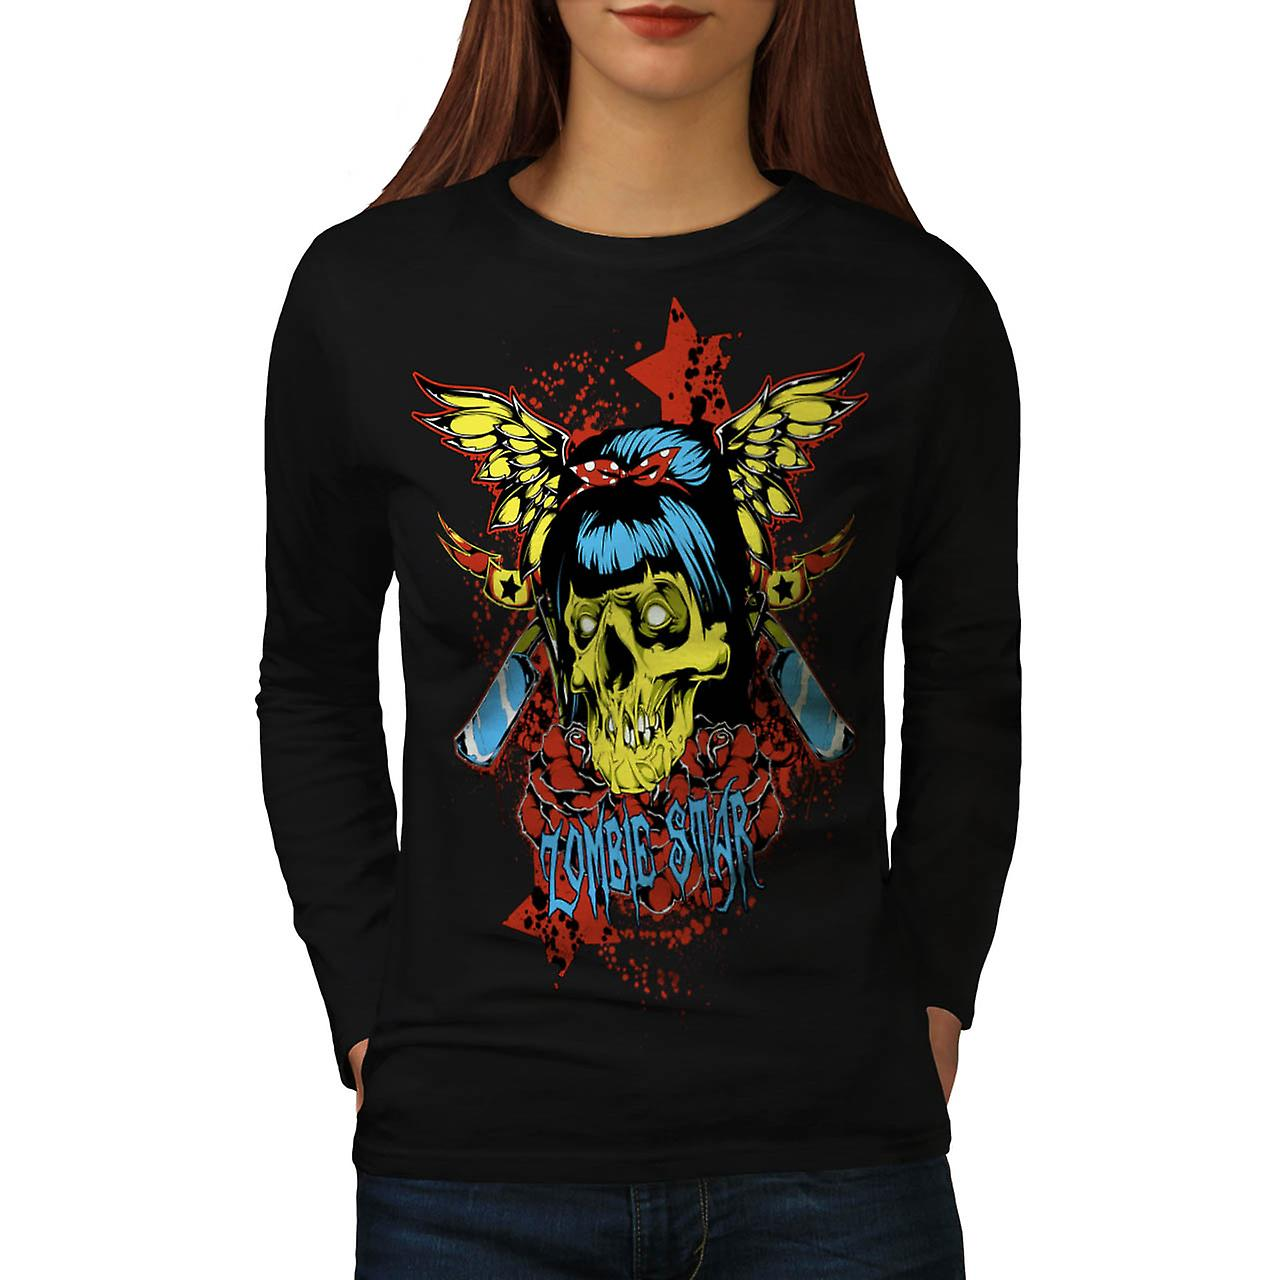 Zombie Star Horror Monster Skull Women Black Long Sleeve T-shirt | Wellcoda